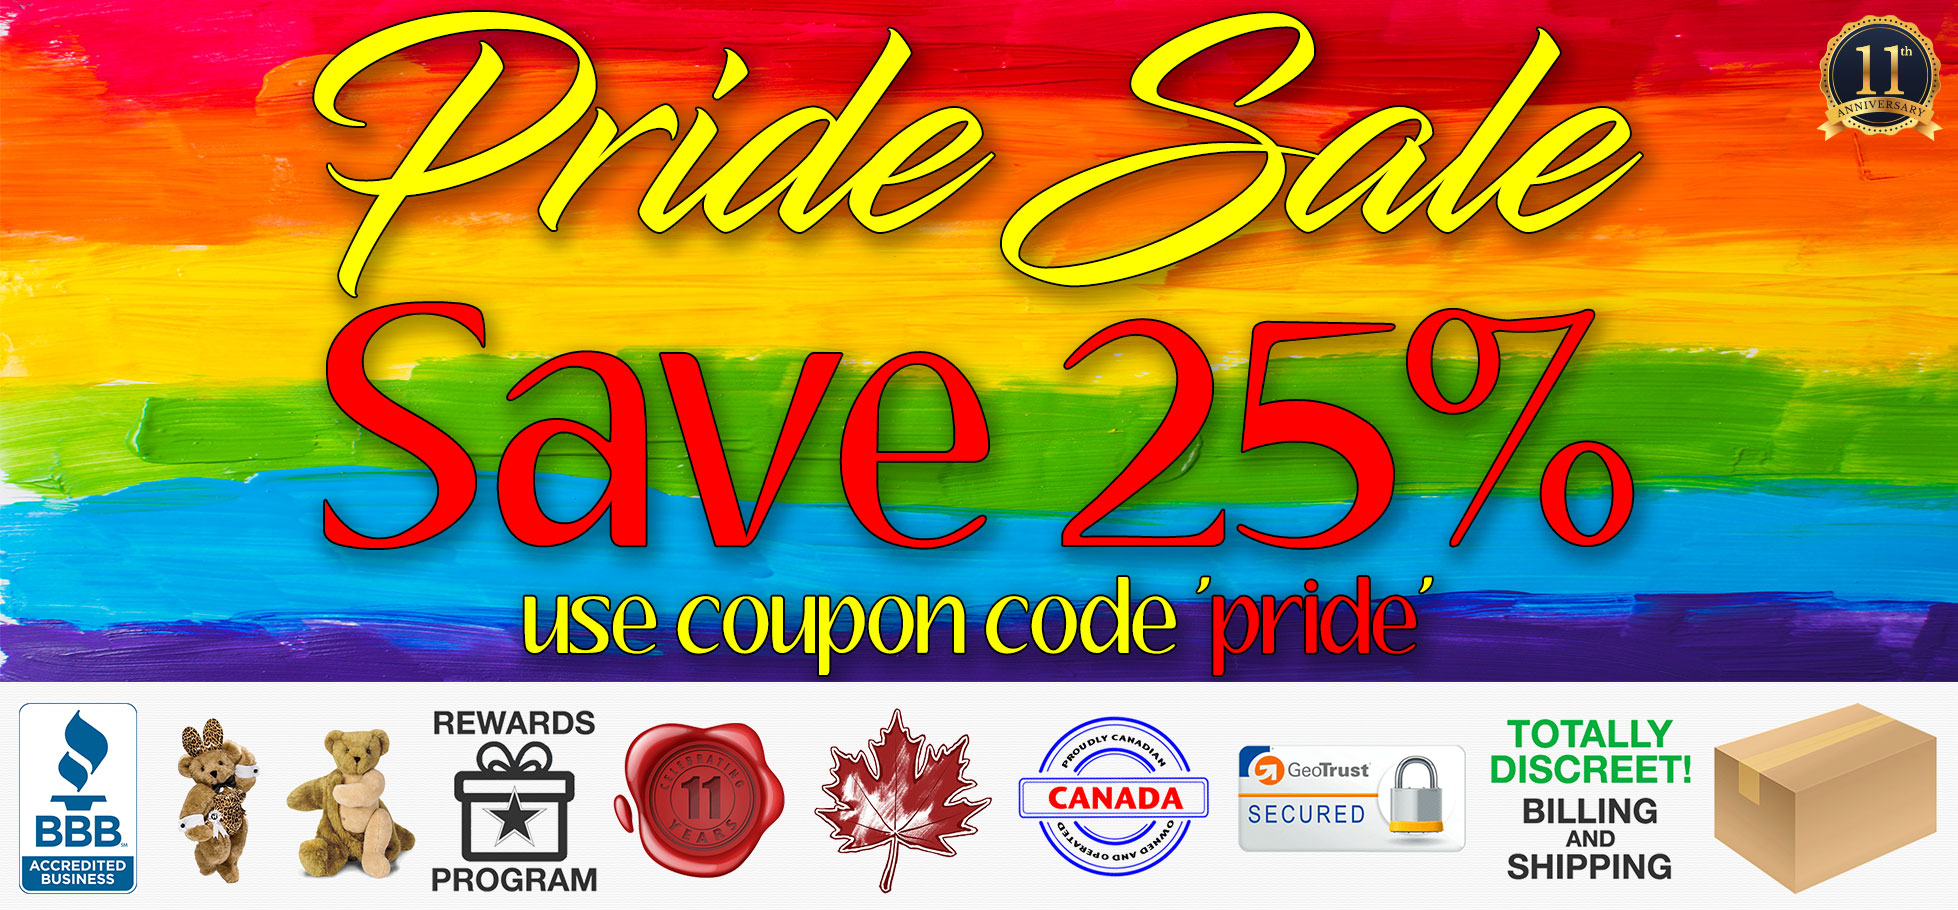 Bed Time Toys, Pride Sex Toy Sale, Sex Toys Canada